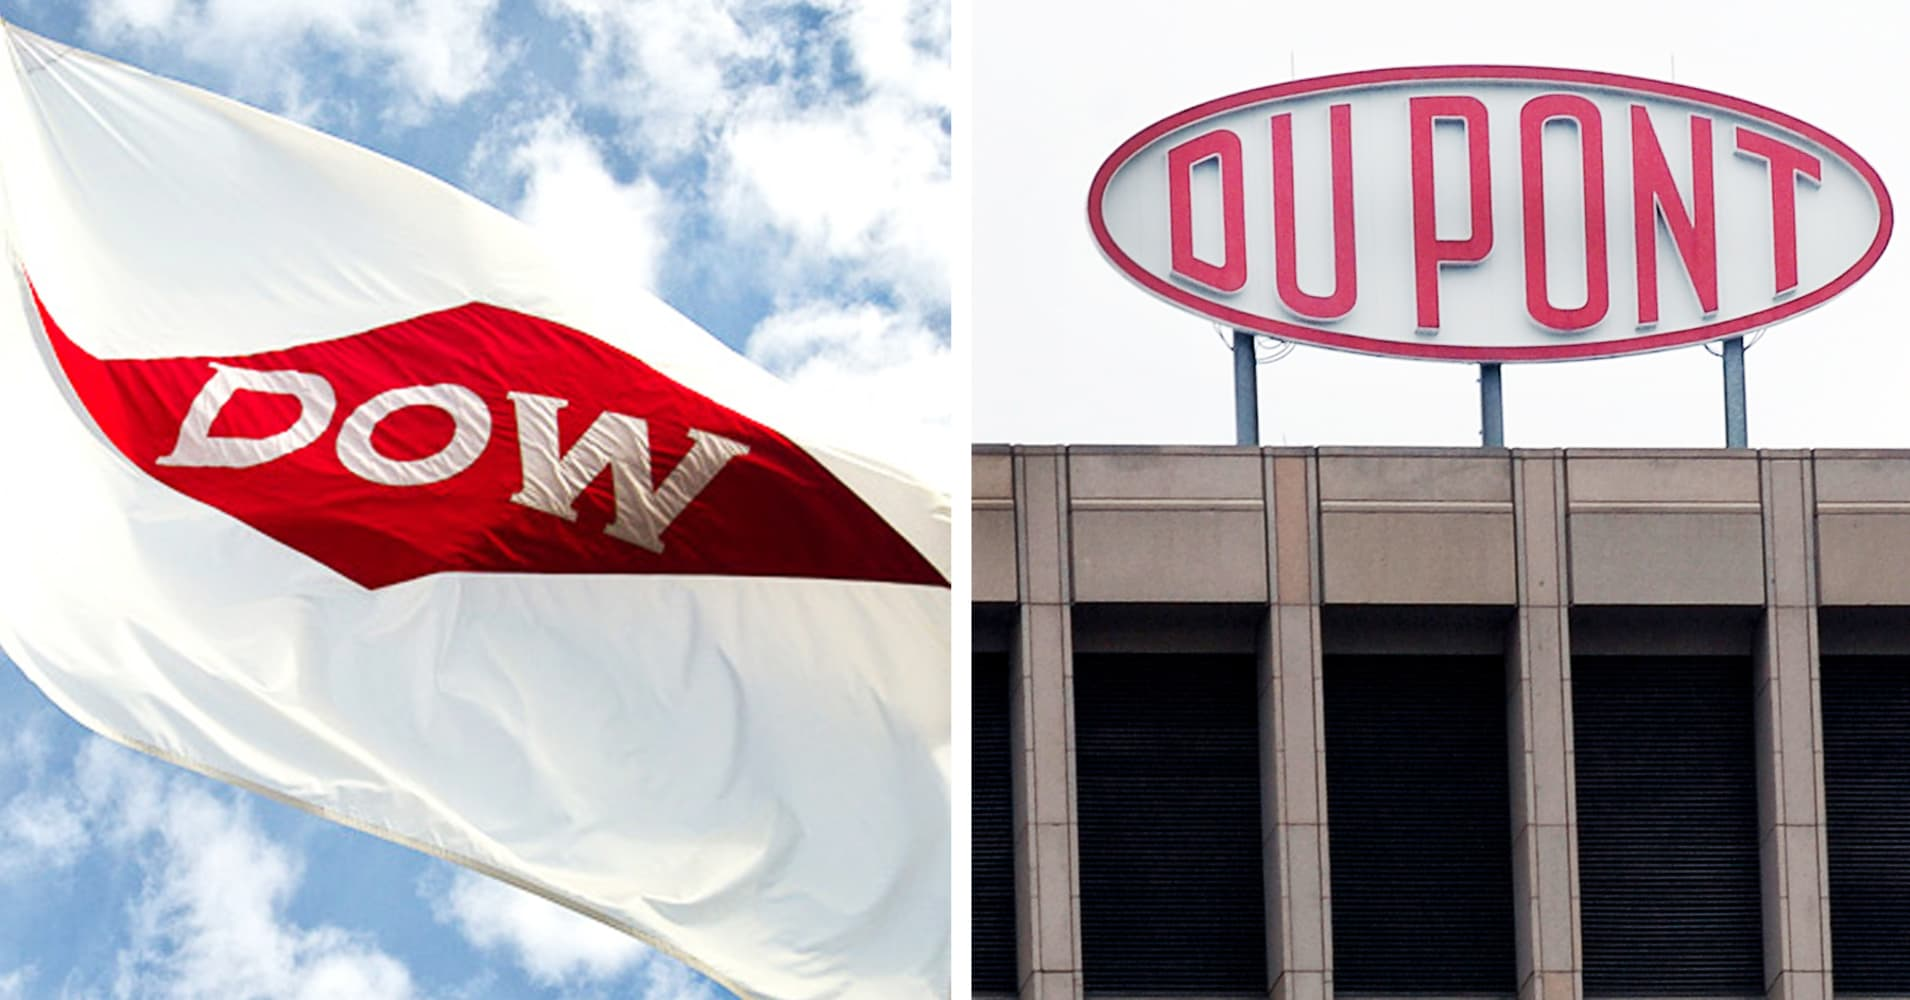 Dow Dupont Complete Planned Merger To Form Dowdupont